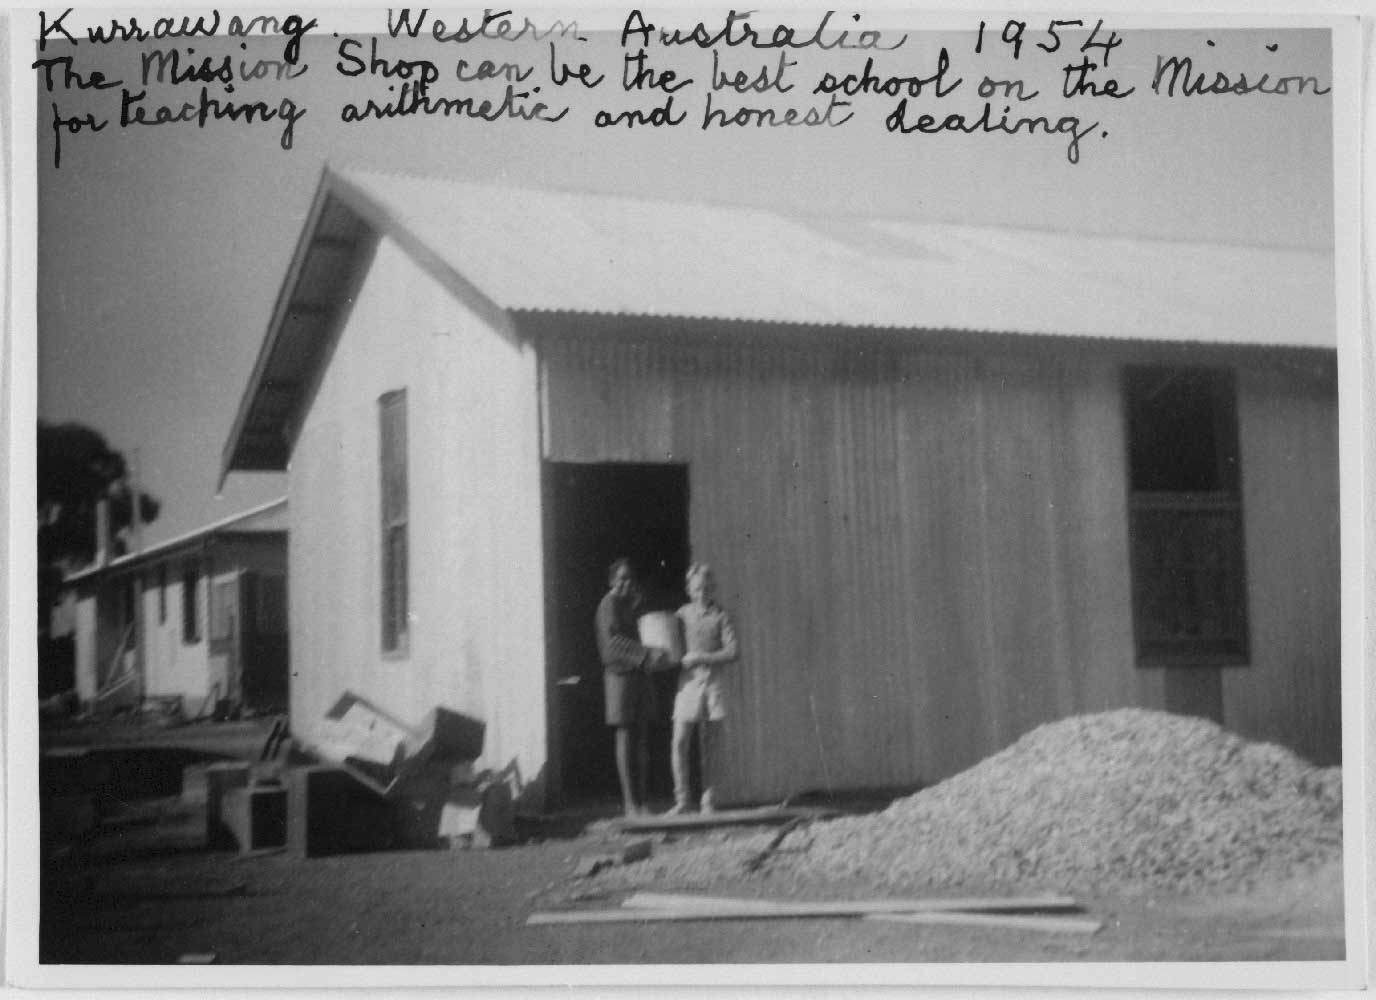 Black and white photo of a blurred image of two children. They are standing in front of a corrugated building surrounded by debris and a pile of gravel or stone like substance.